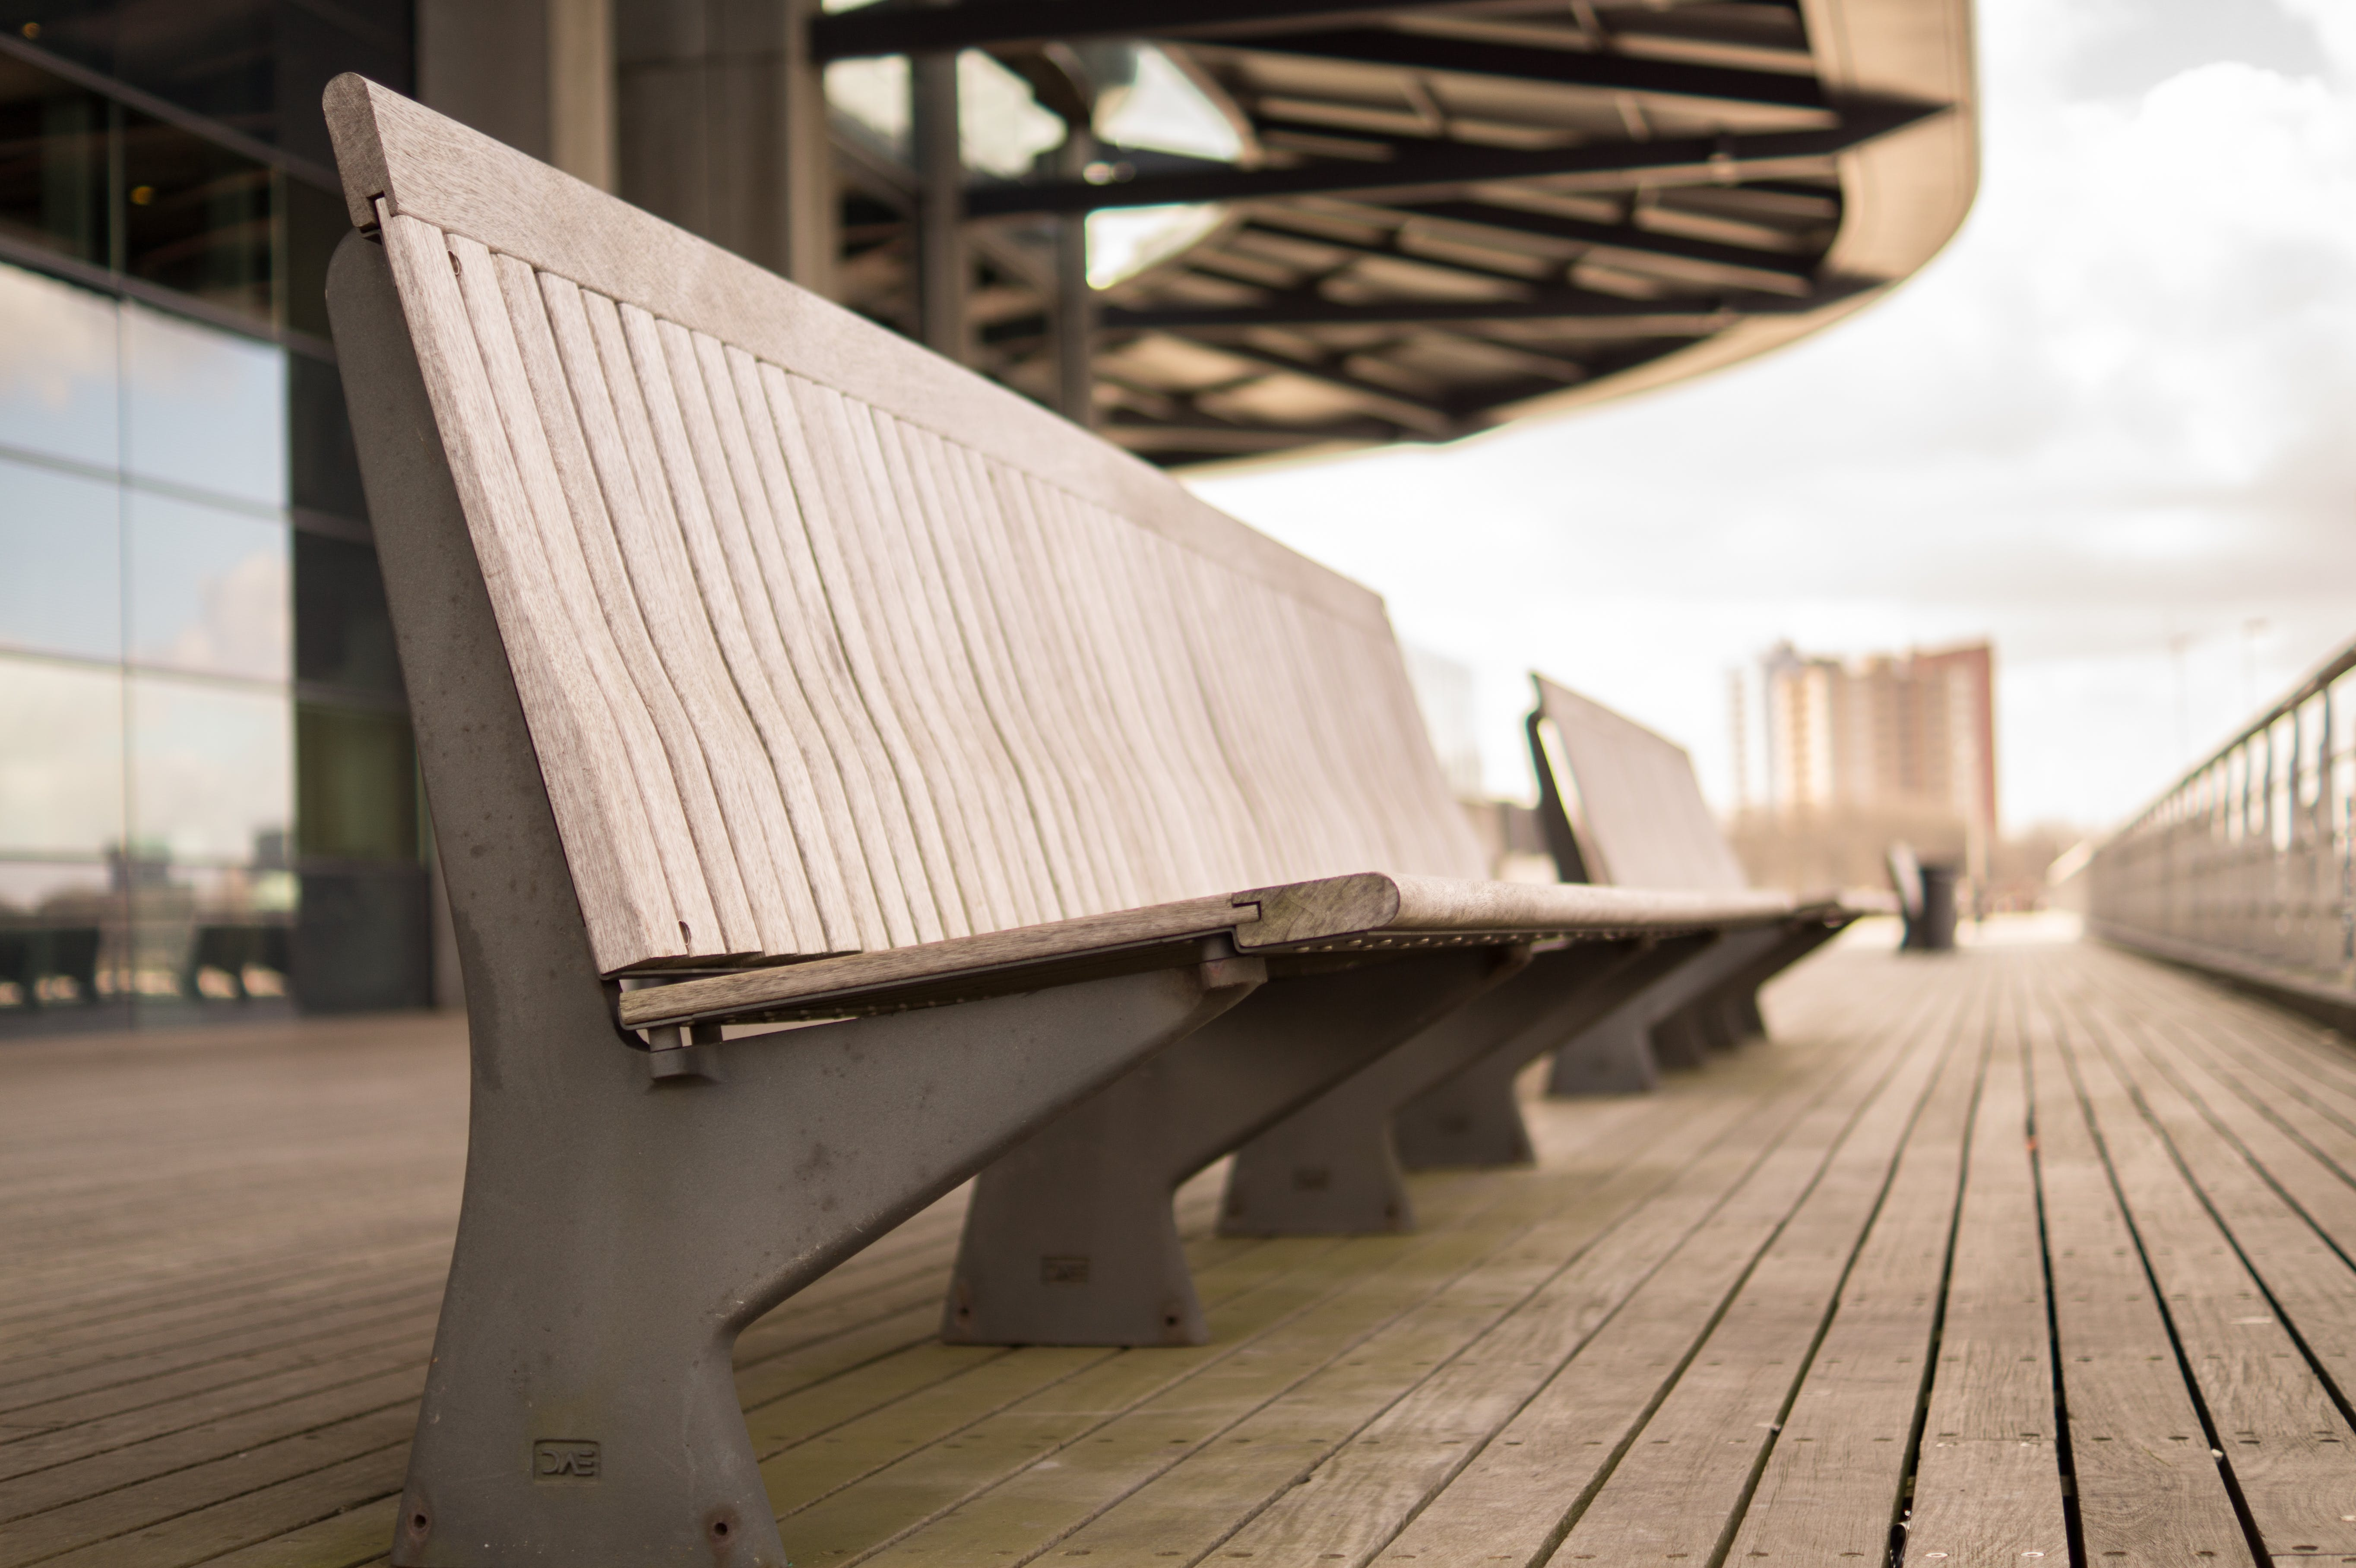 Close-up Photography of Beige Wooden Bench